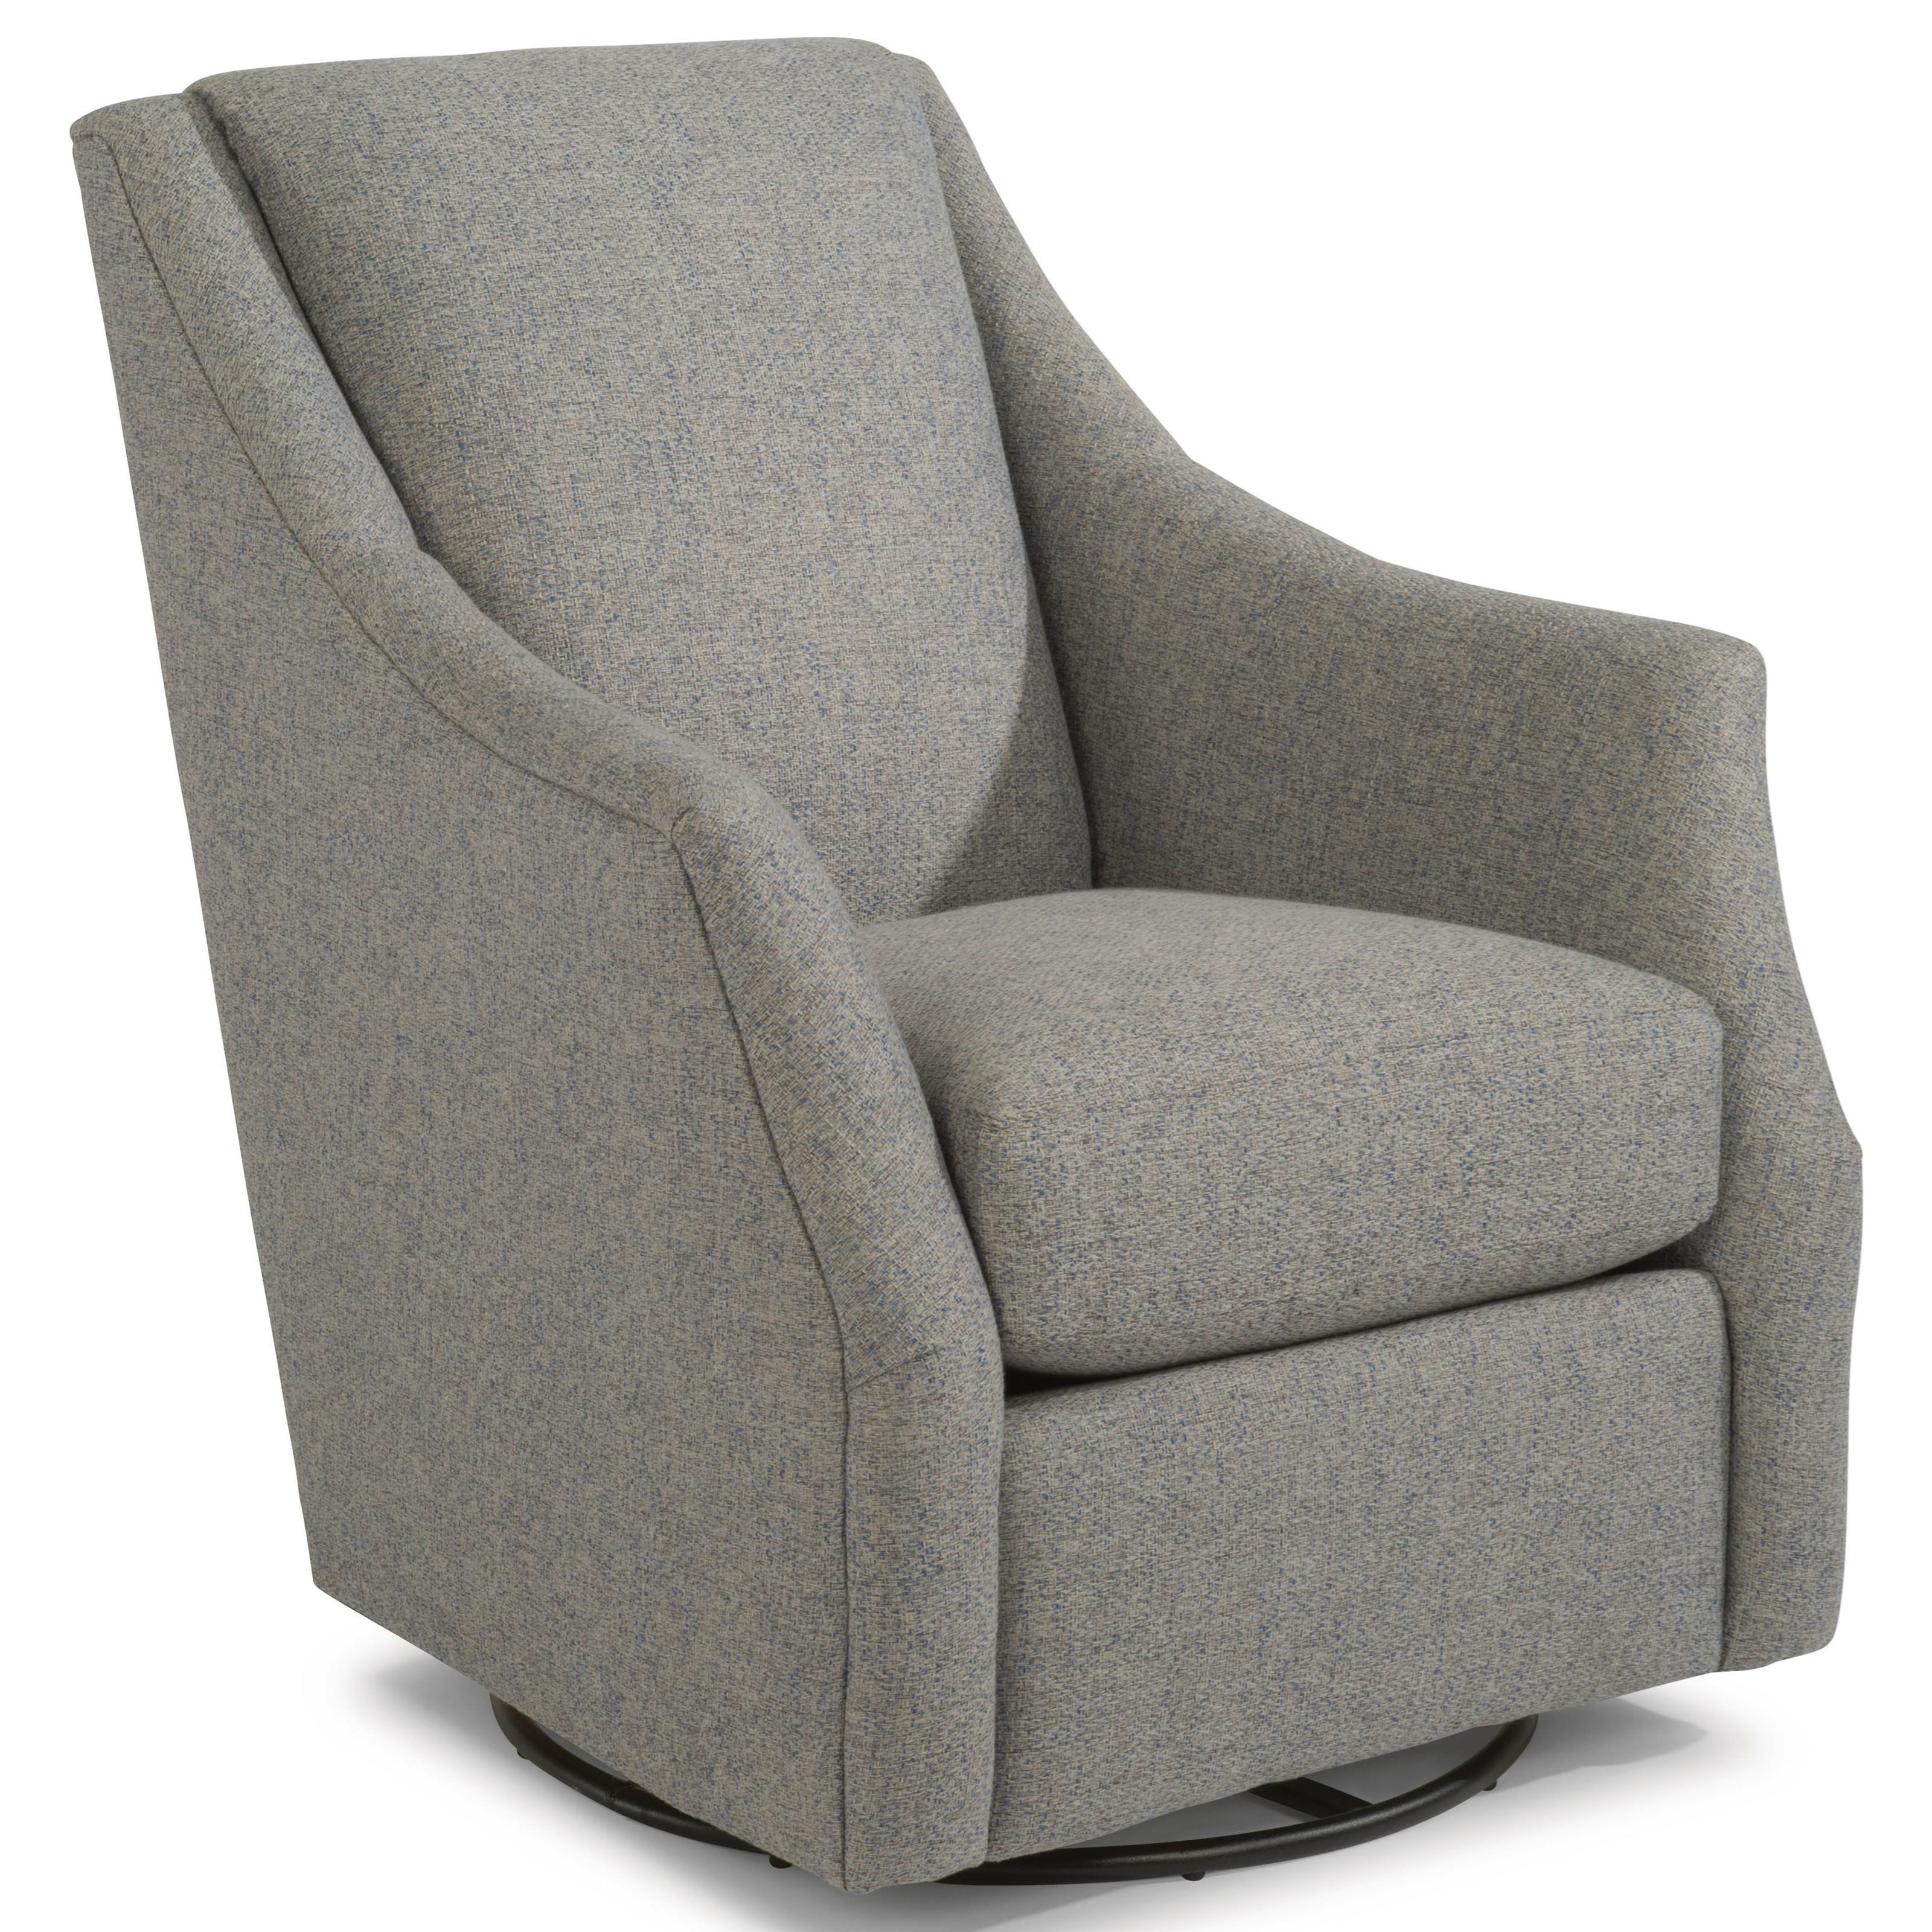 Incroyable Flexsteel Plymouth Transitional Swivel Chair With Plush Reversible Seat  Cushion